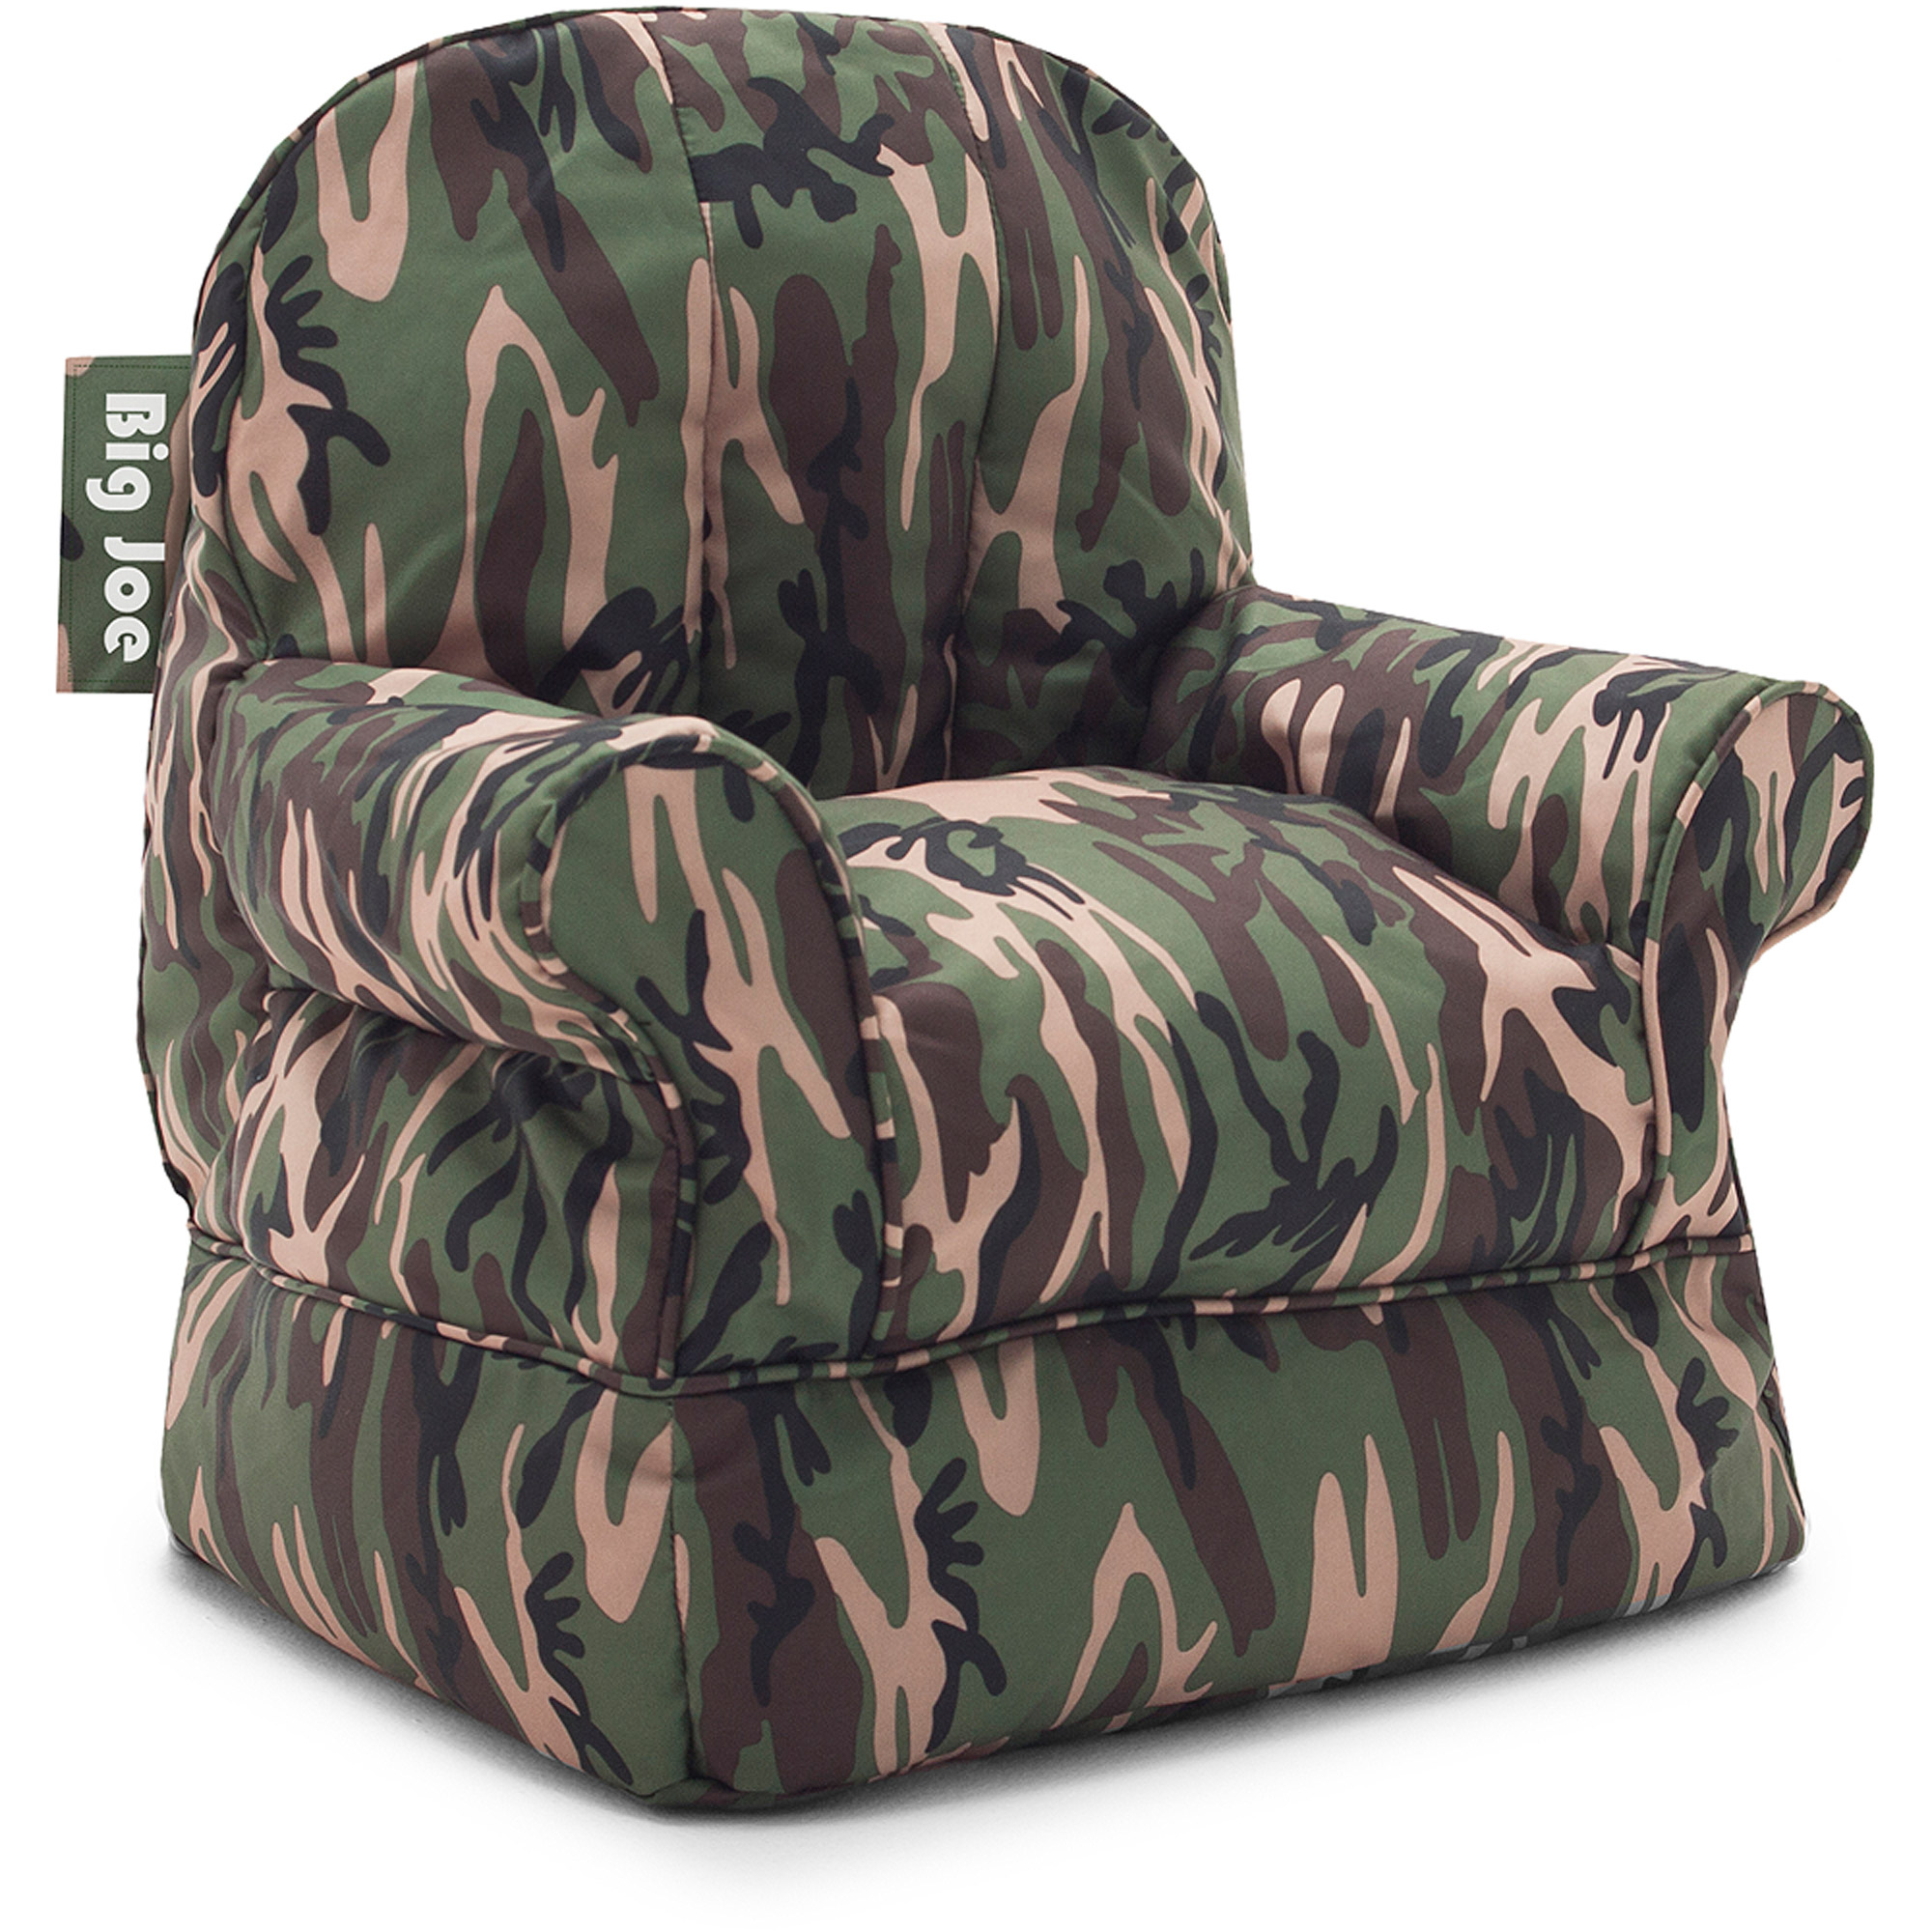 Big W Kids Chair Big Joe Bubs Camo Kids Bean Bag Chair